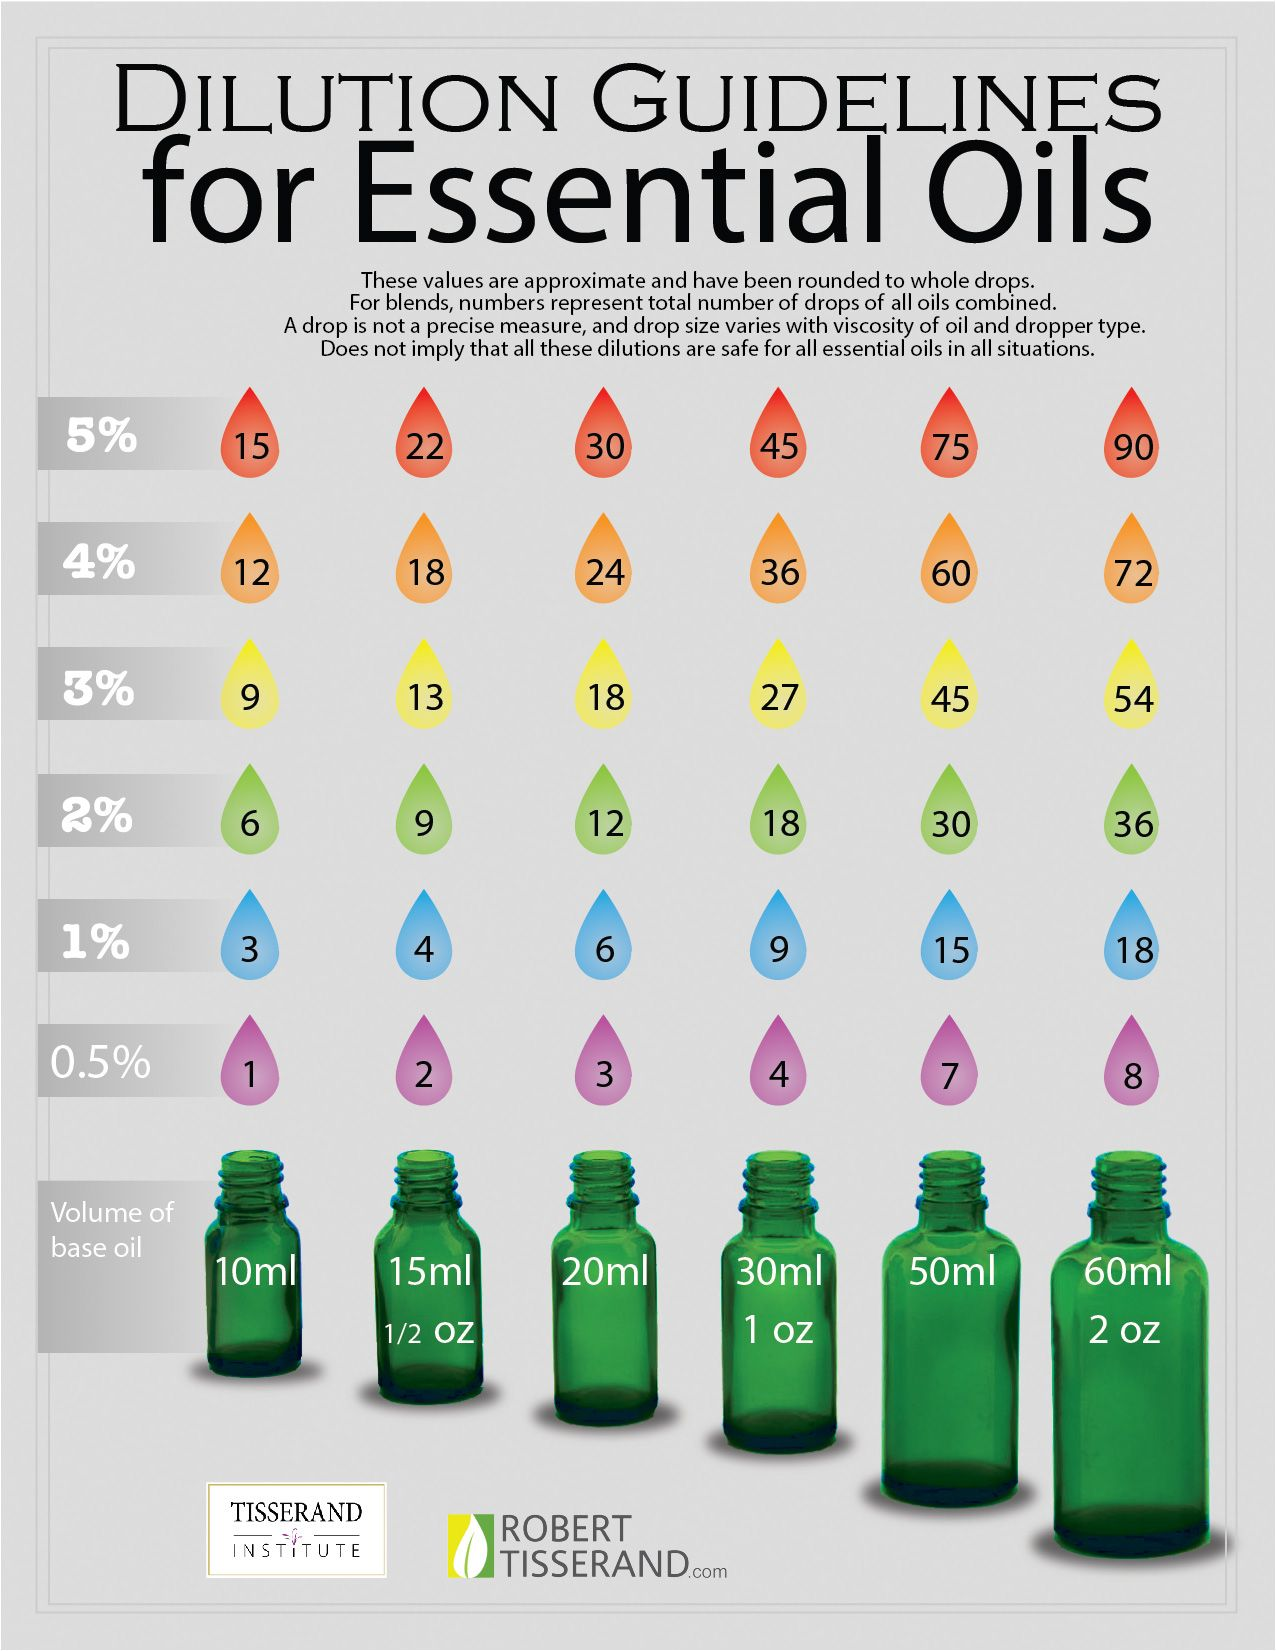 Dilution guidelines for essential oils from tisserand institute also rh pinterest